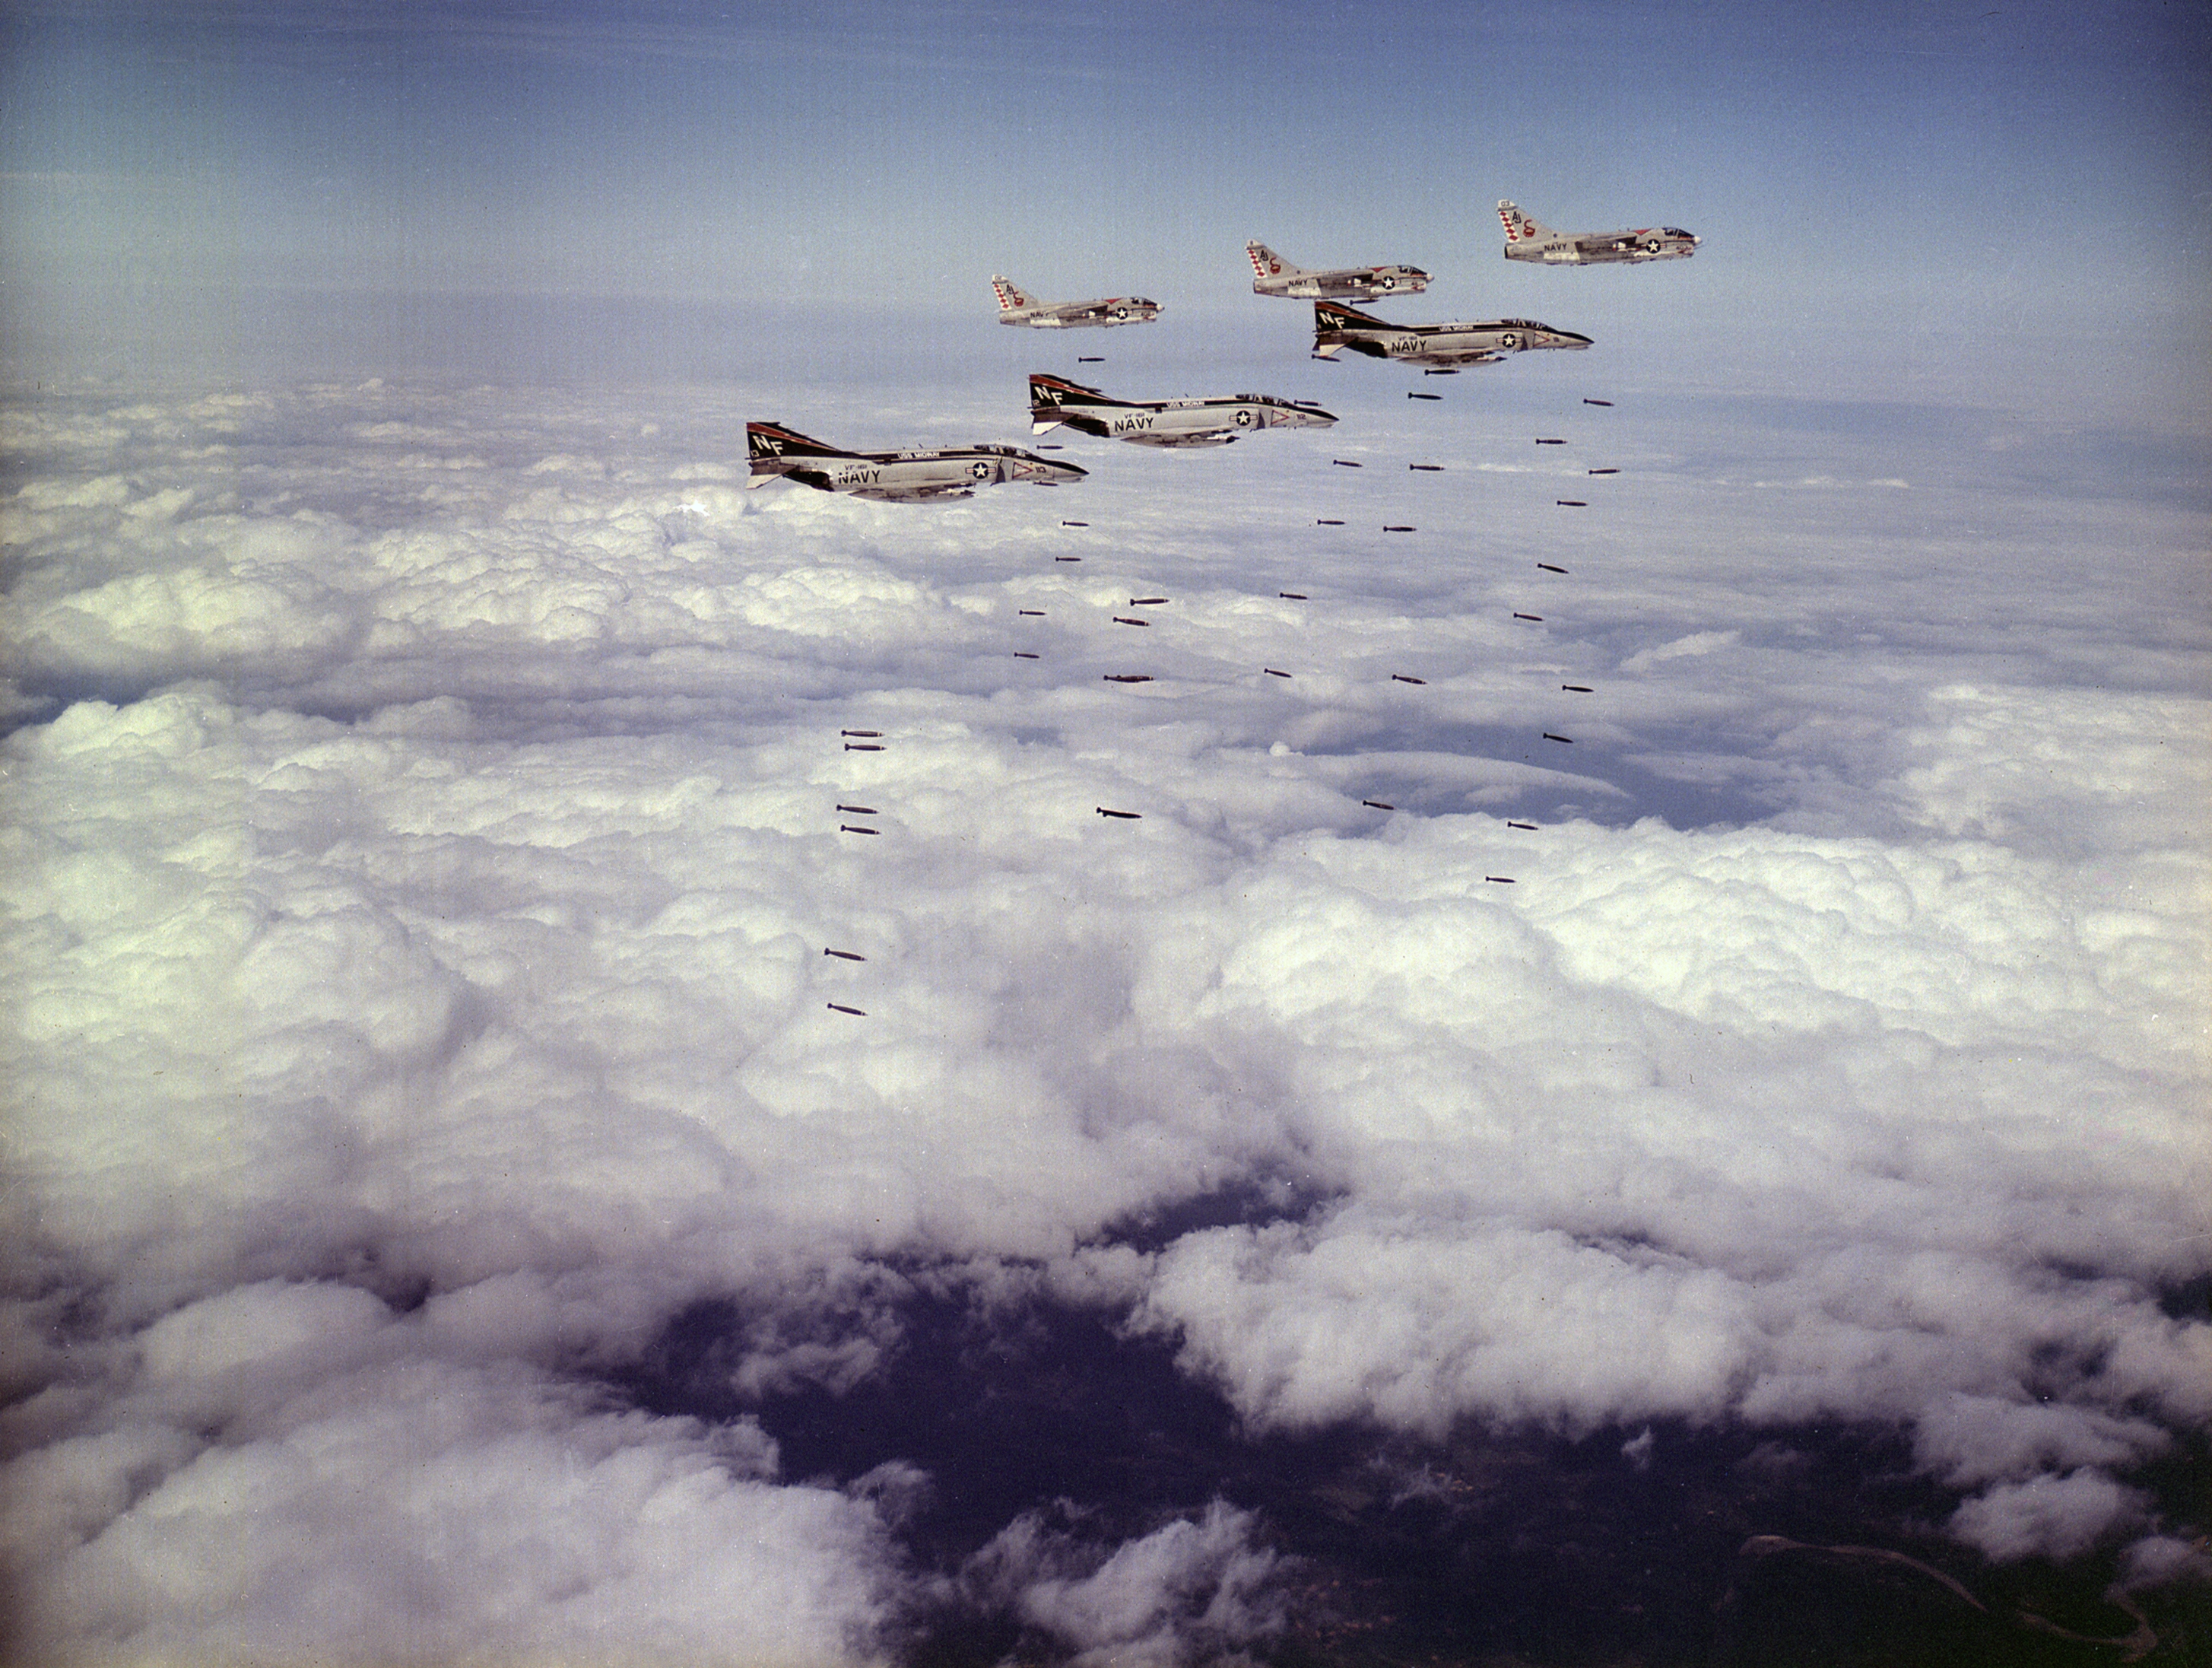 https://upload.wikimedia.org/wikipedia/commons/9/97/F-4B_Phantoms_of_VF-161_and_A-7C_Corsairs_of_VA-86_drop_bombs_on_Vietnam_in_March_1973.jpg